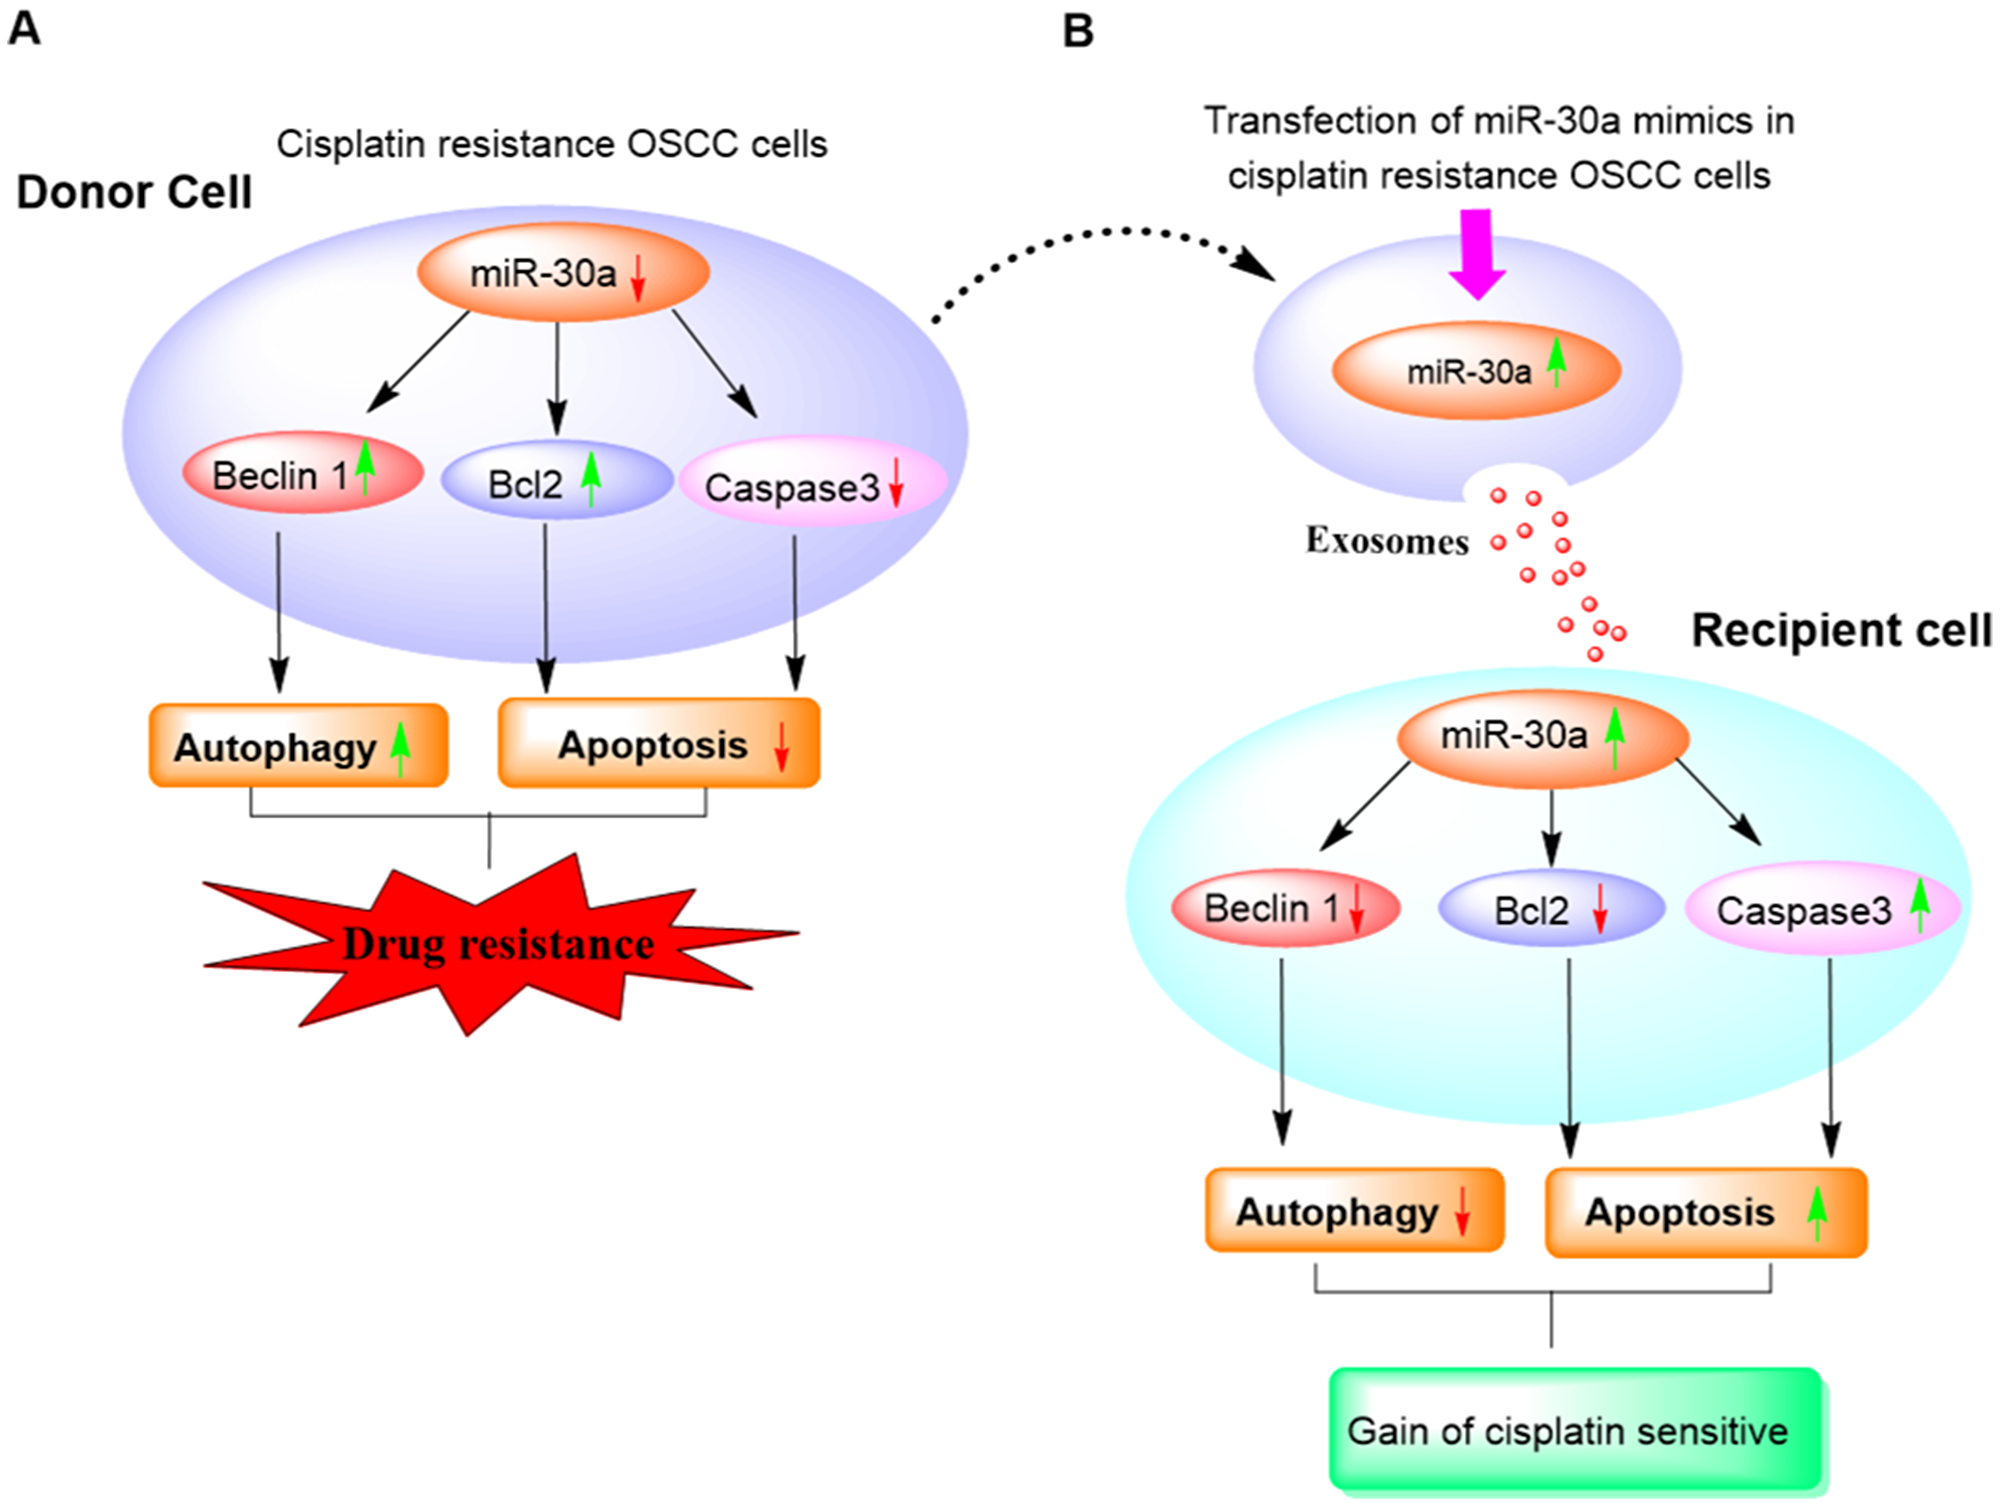 Diagram illustrating the role of exosome-mediated miR30a delivery in a reversal of cisplatin resistance in OSCC cells.